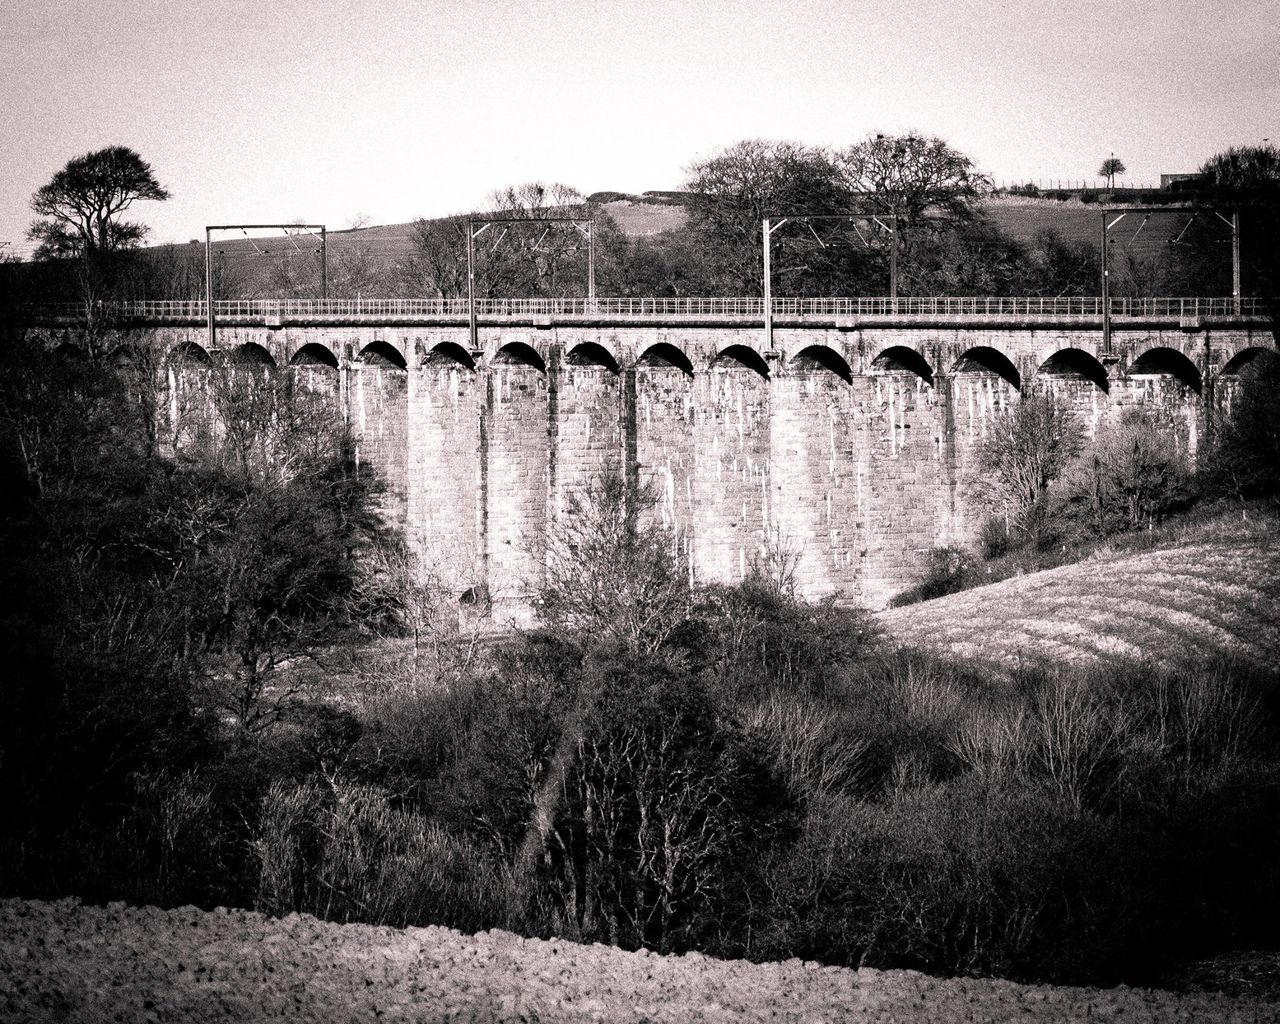 bridge - man made structure, connection, architecture, viaduct, arch bridge, built structure, arch, transportation, no people, train - vehicle, tree, river, outdoors, day, sky, water, nature